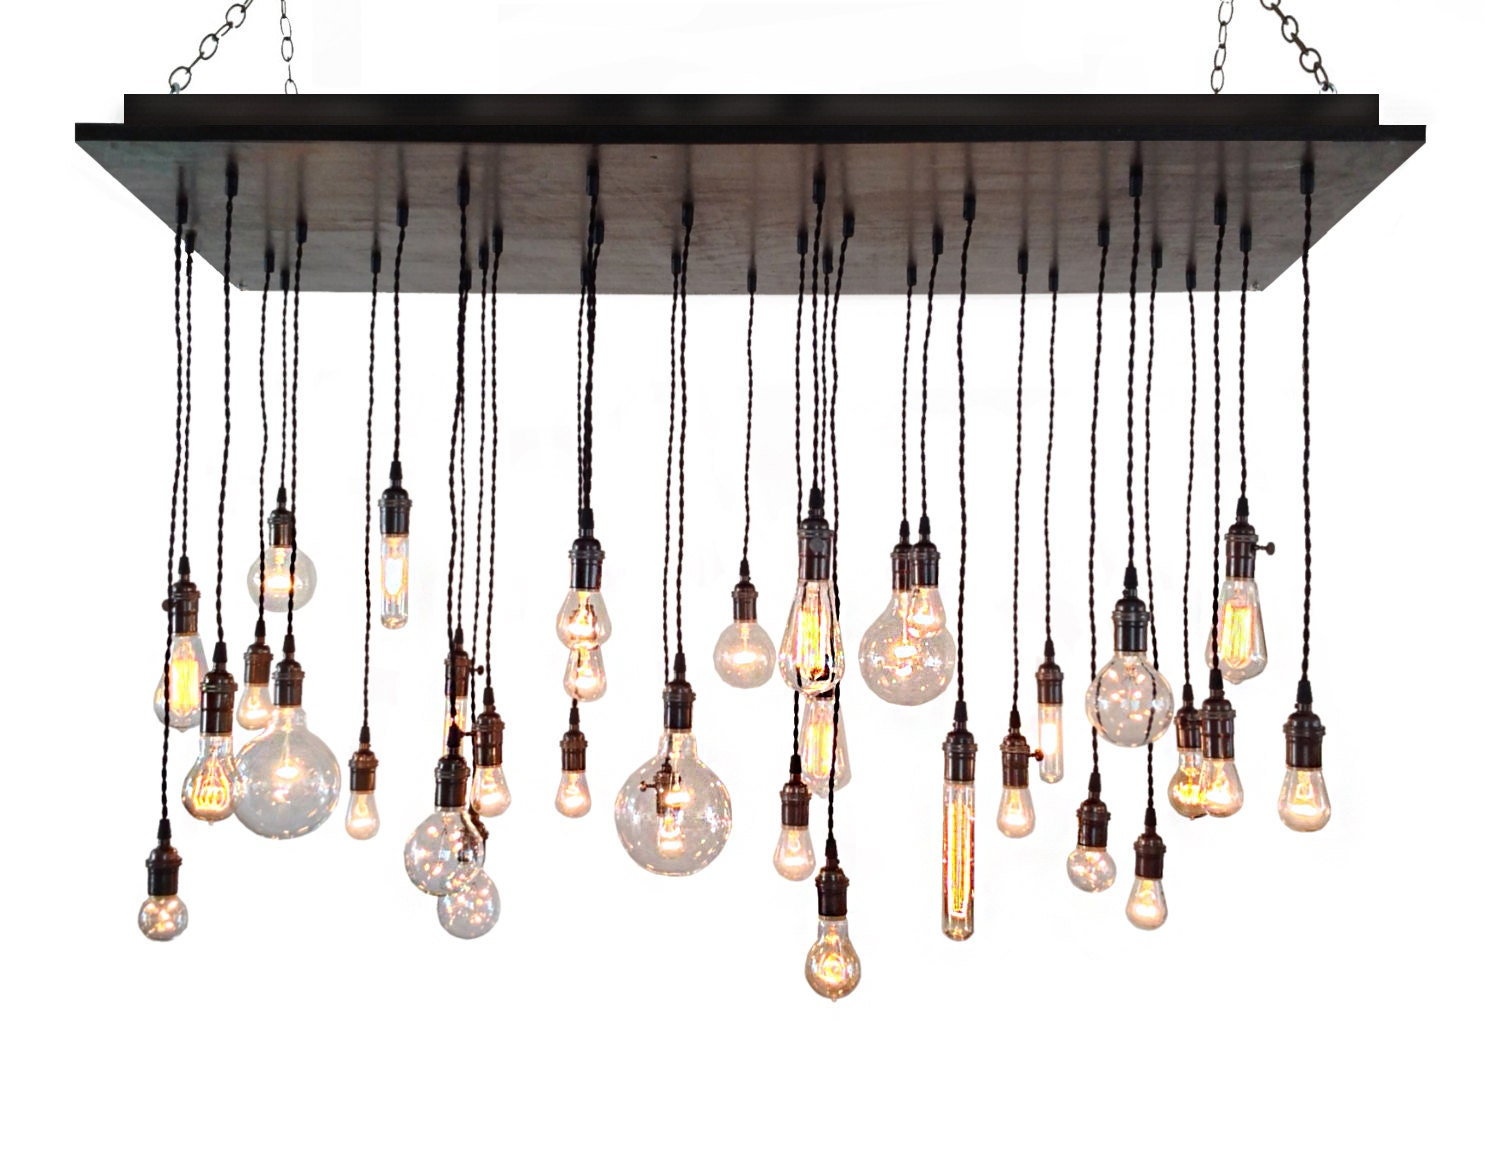 Industrial chandelier rustic lighting modern chandelier zoom aloadofball Choice Image